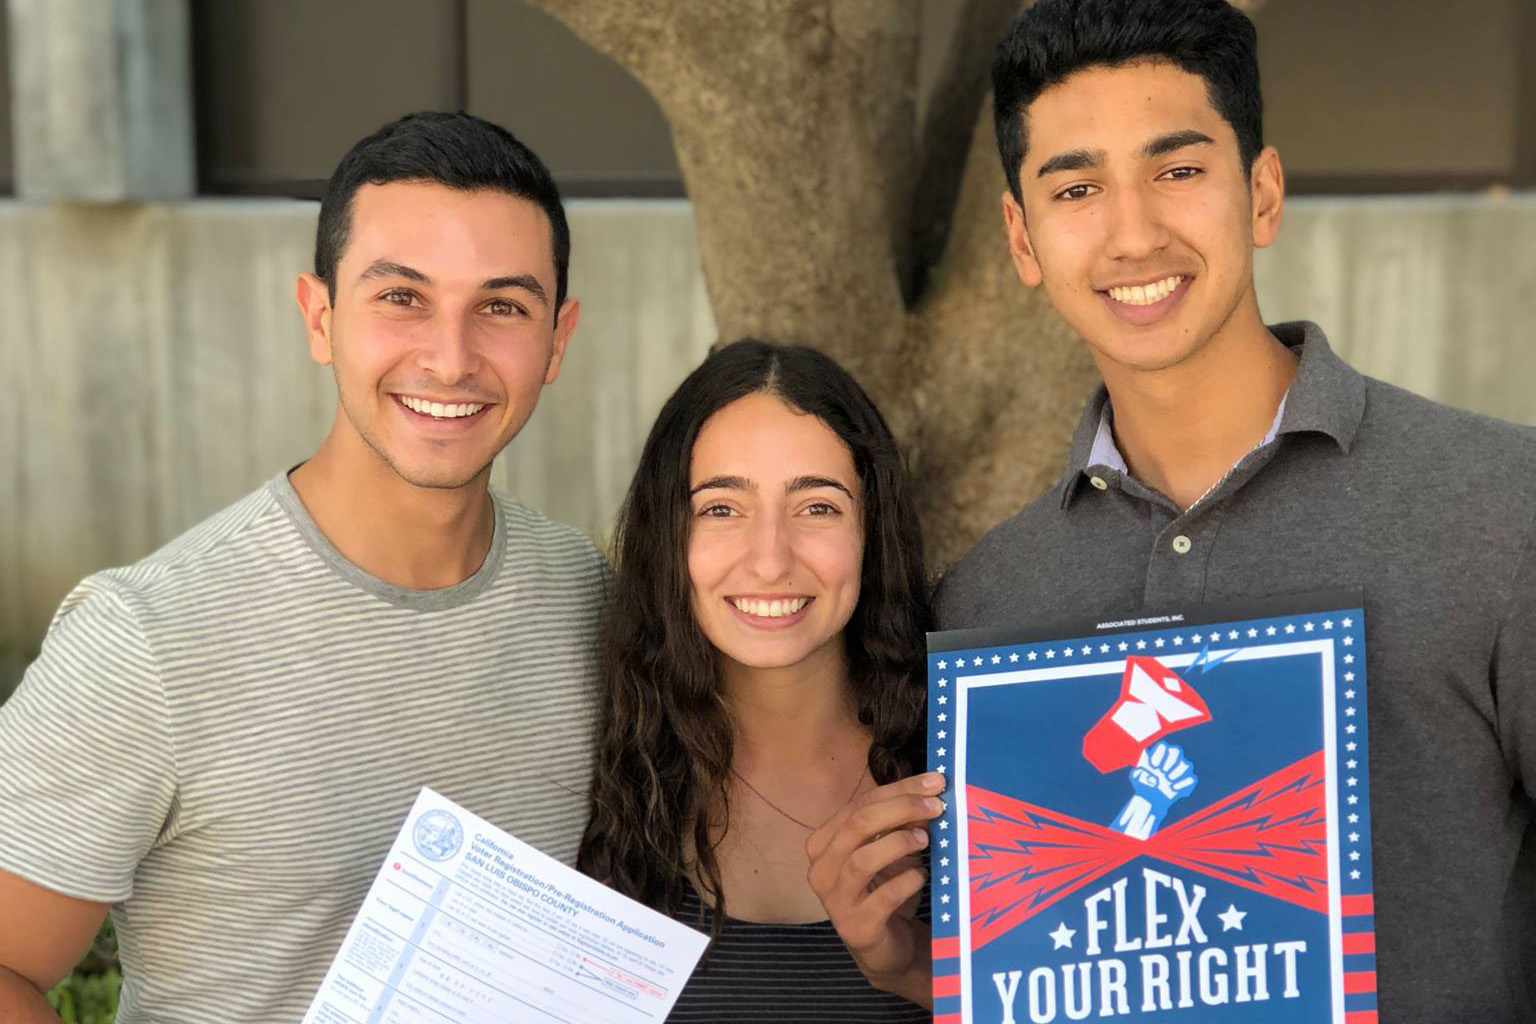 Two male students and a female student smile while holding a Flex Your Right red, white, and blue poster